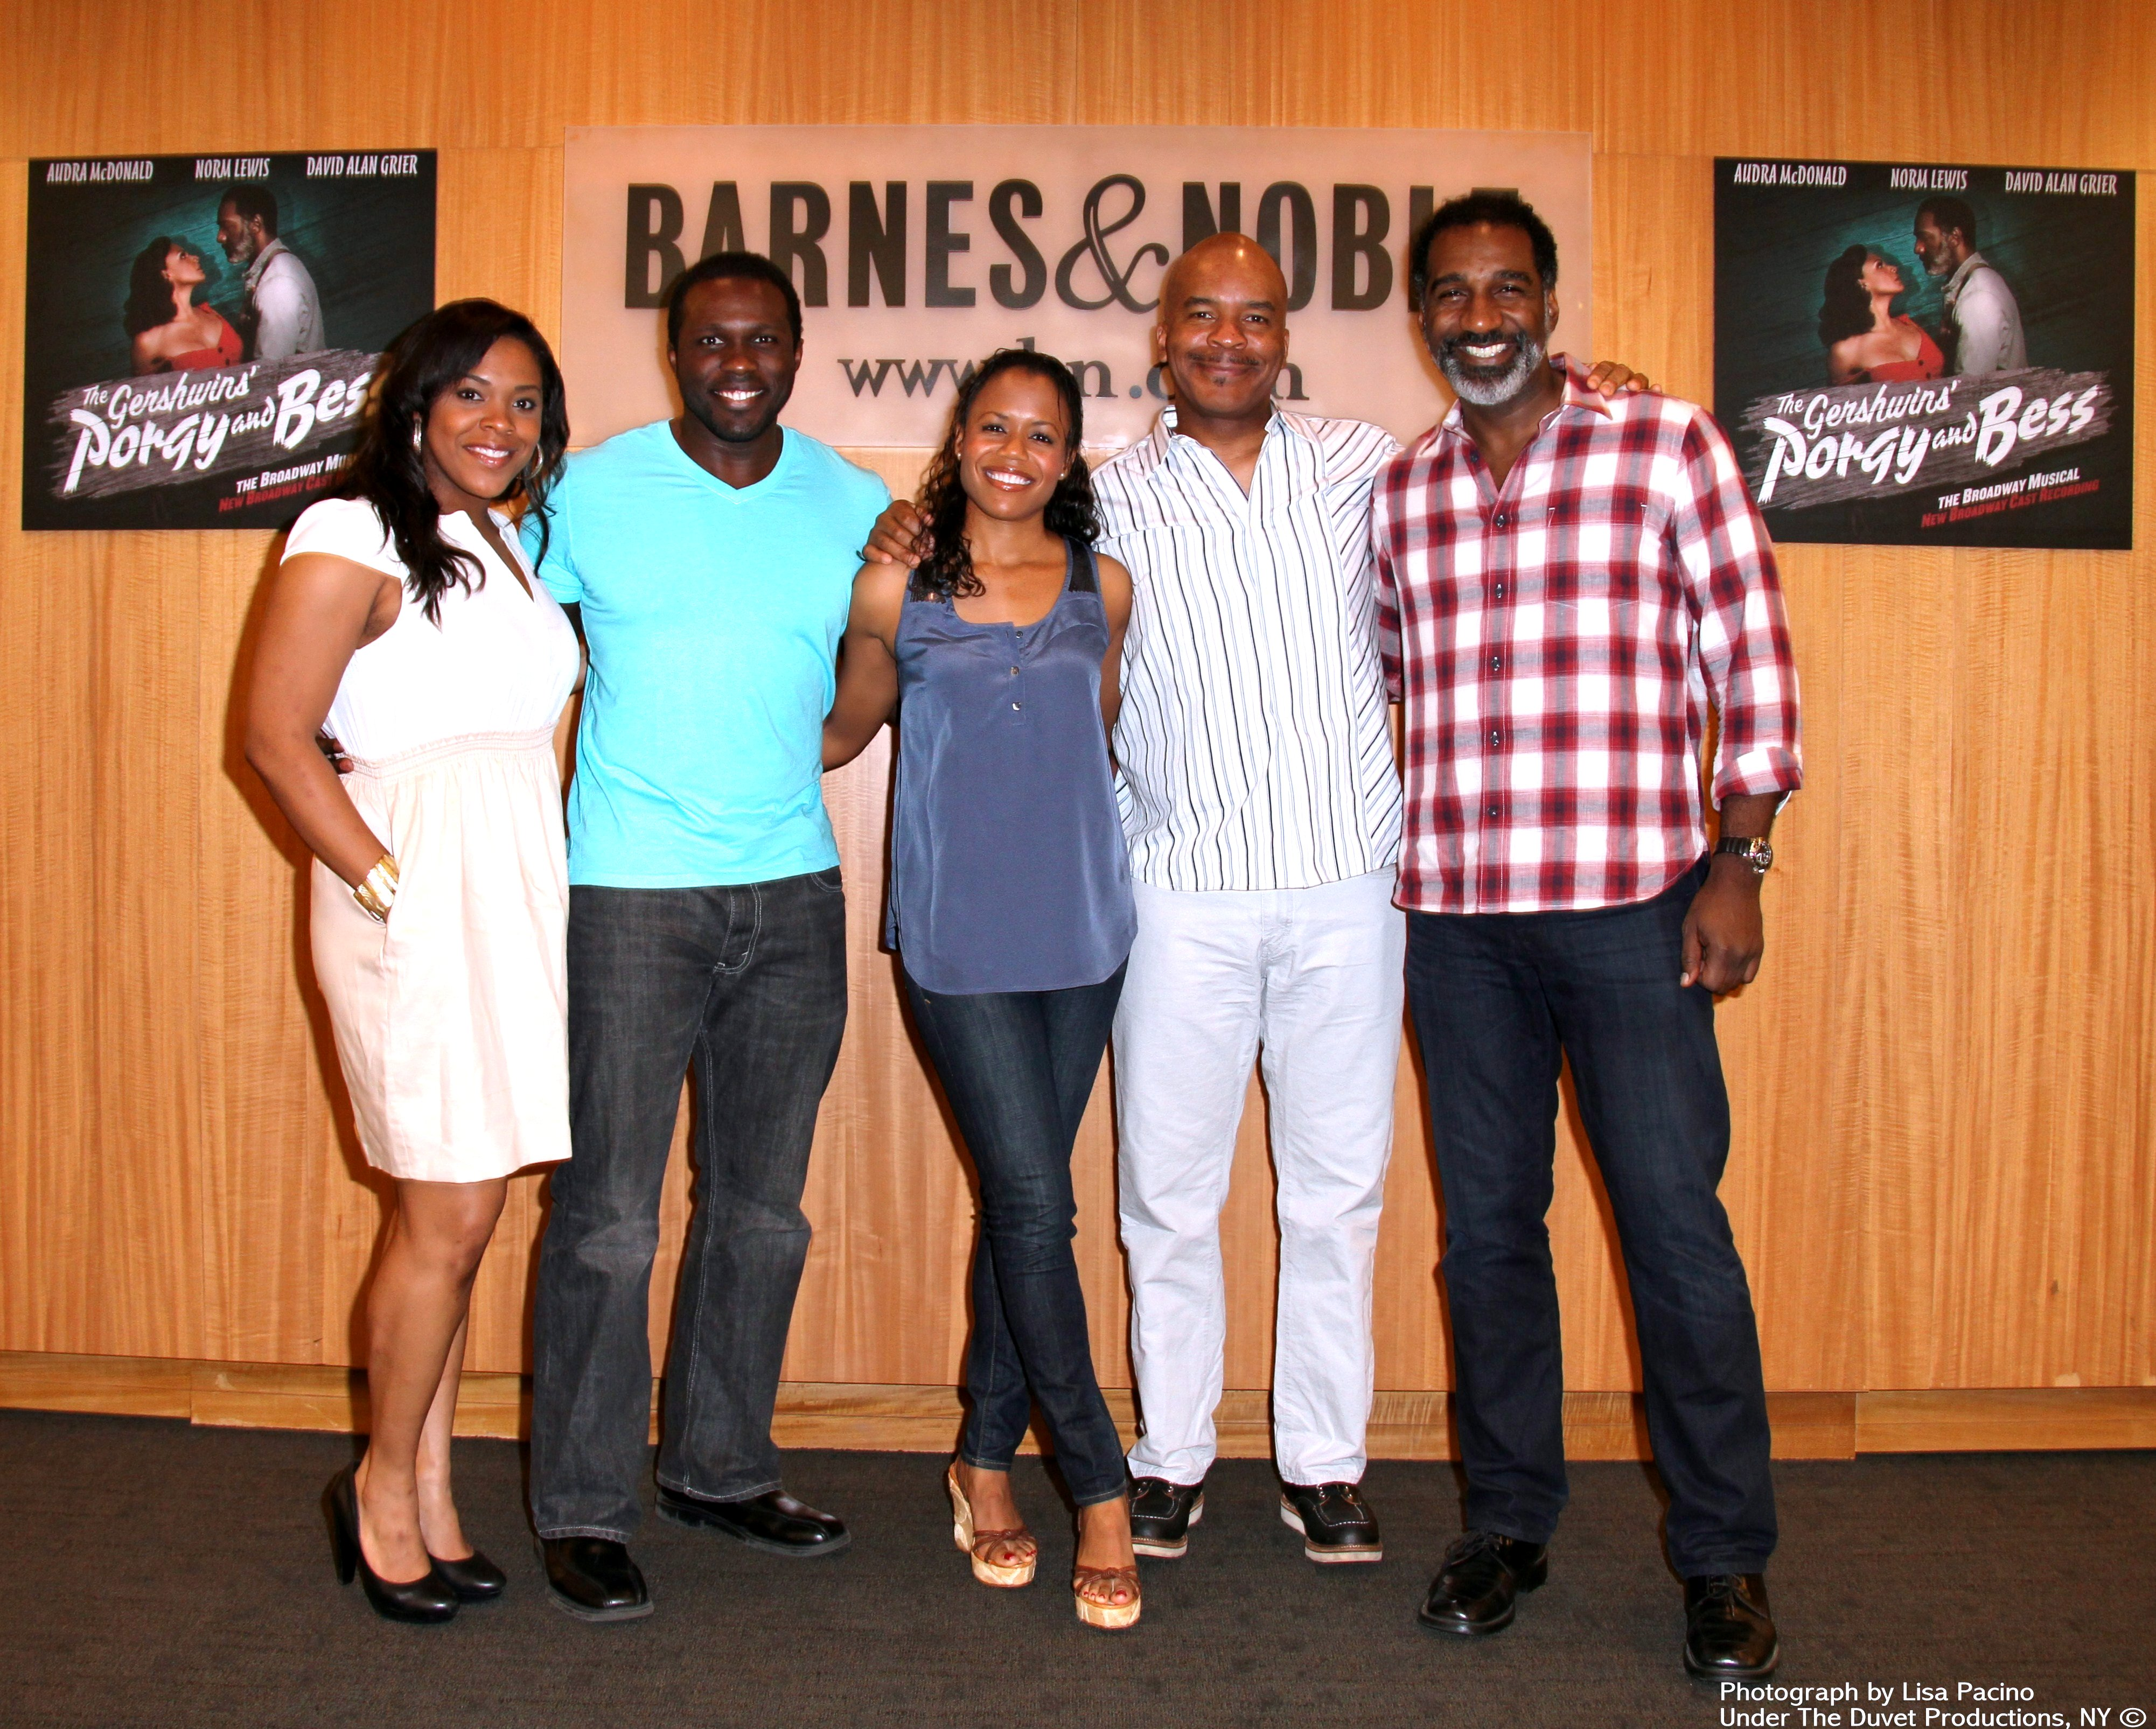 Flash PORGY BESS Cast Signs Albums at Barnes Noble